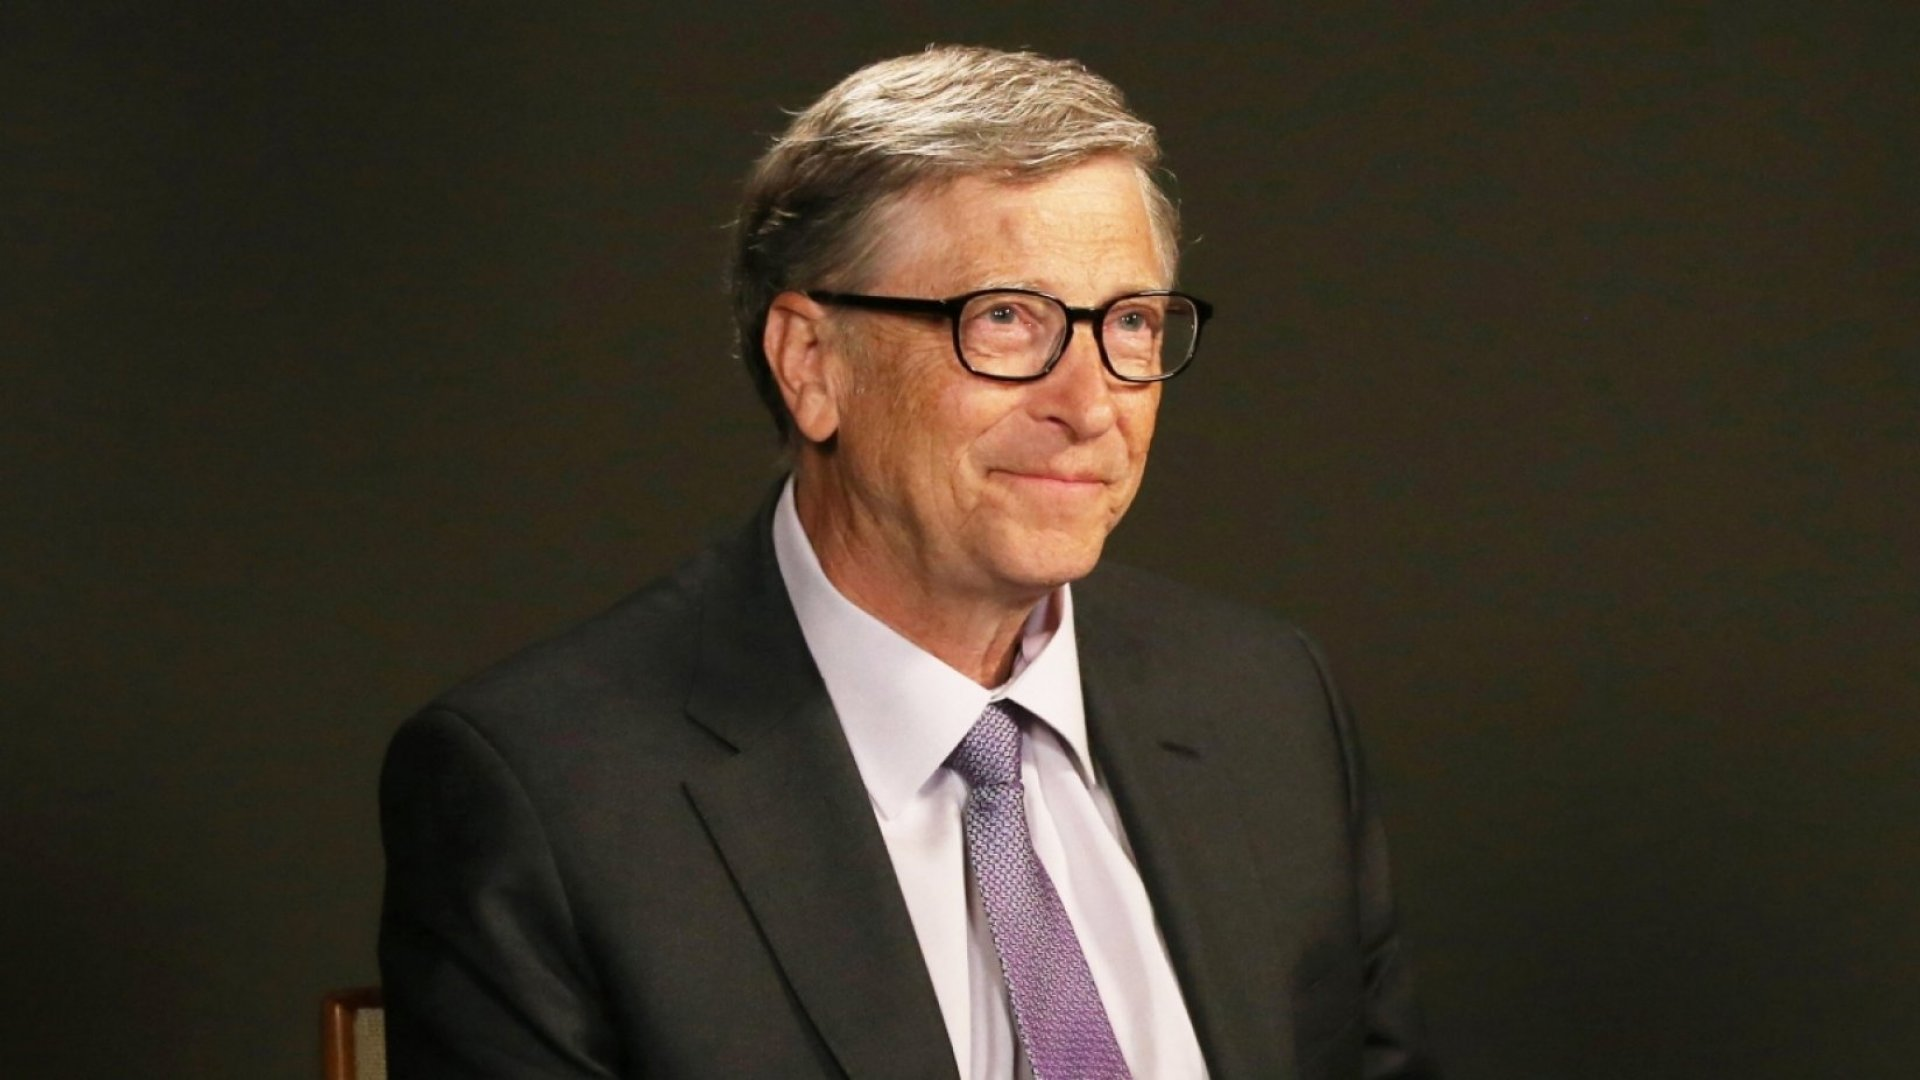 Why Bill Gates Is the Business World's Coronavirus Leader